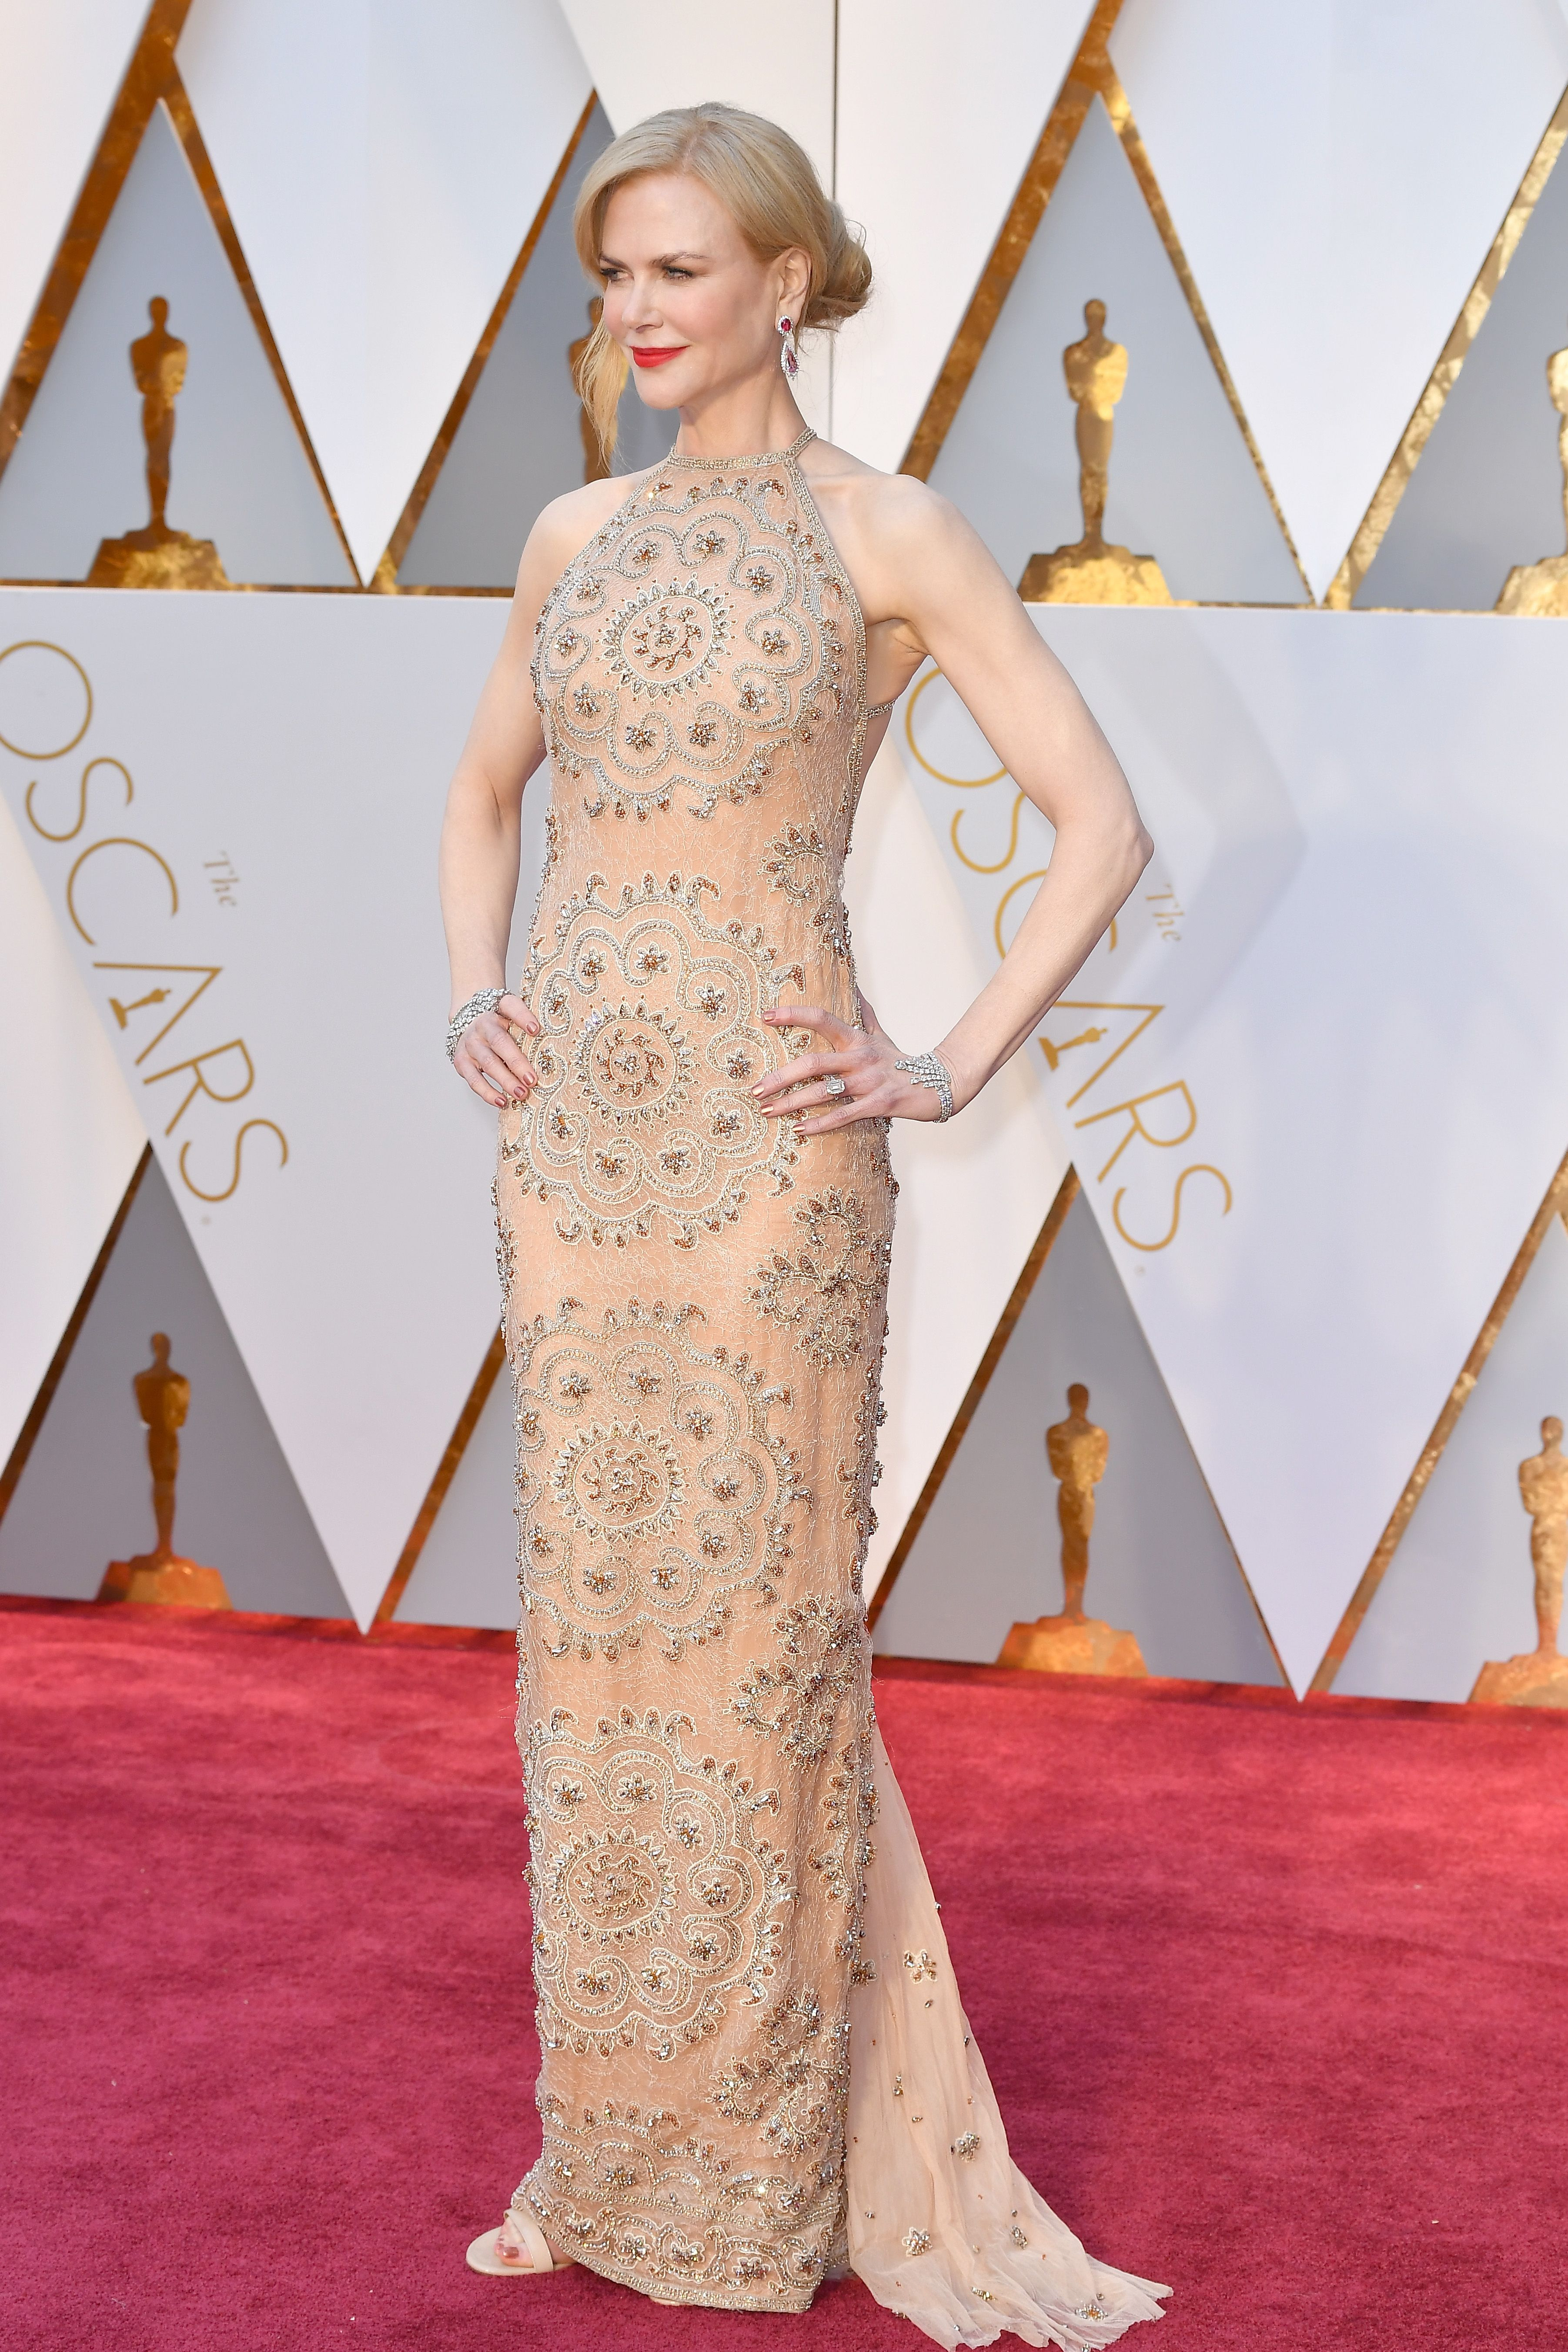 13638f0da Nicole Kidman's Most Stunning Looks of All Time - Nicole Kidman Style